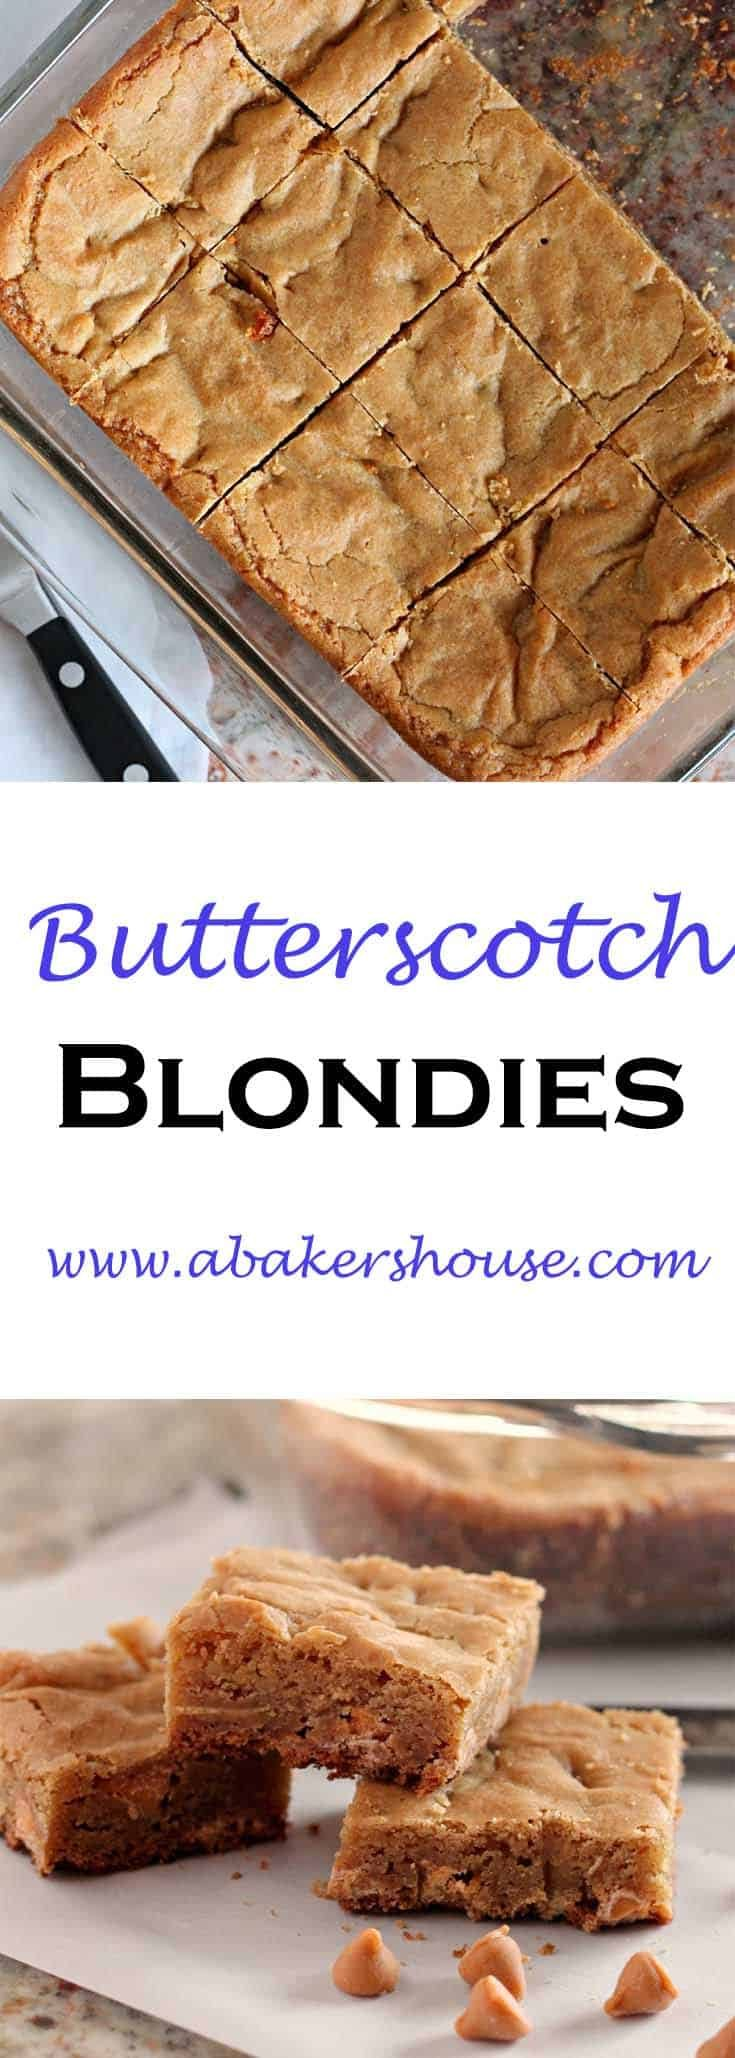 Butterscotch Blondies, a recipe from Cooking Light made by #abakershouse #butterscotch #brownies #blondies